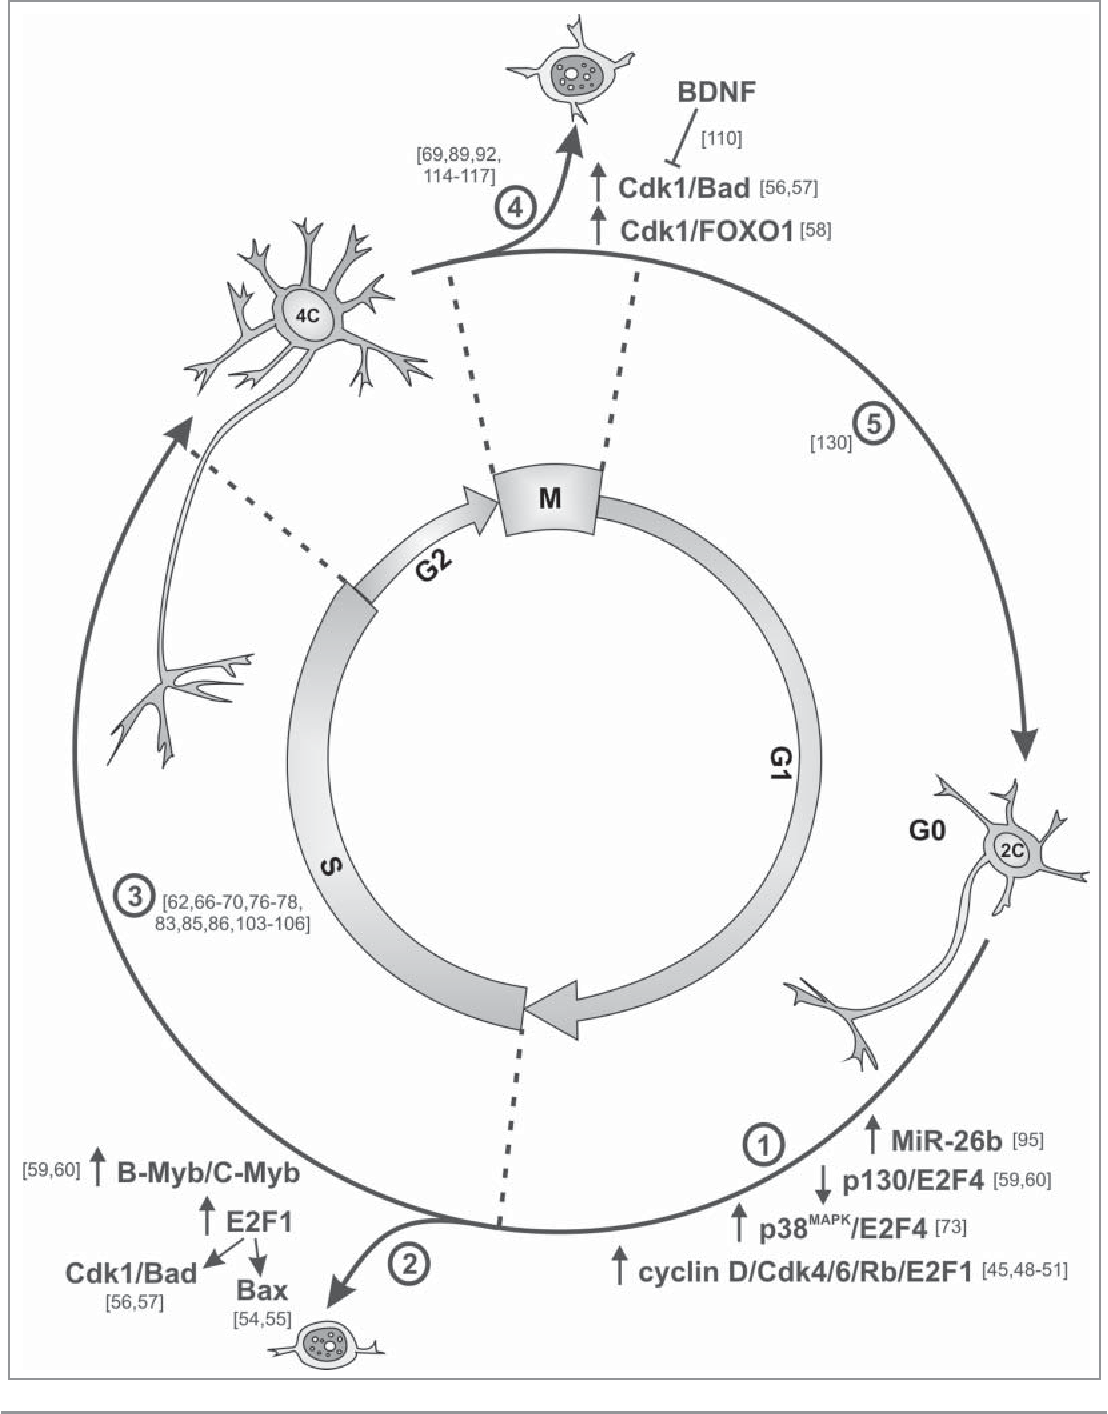 5e4dbeaea4ba Scheme showing the evidence for cell cycle progression in neurons.  Postmitotic neurons